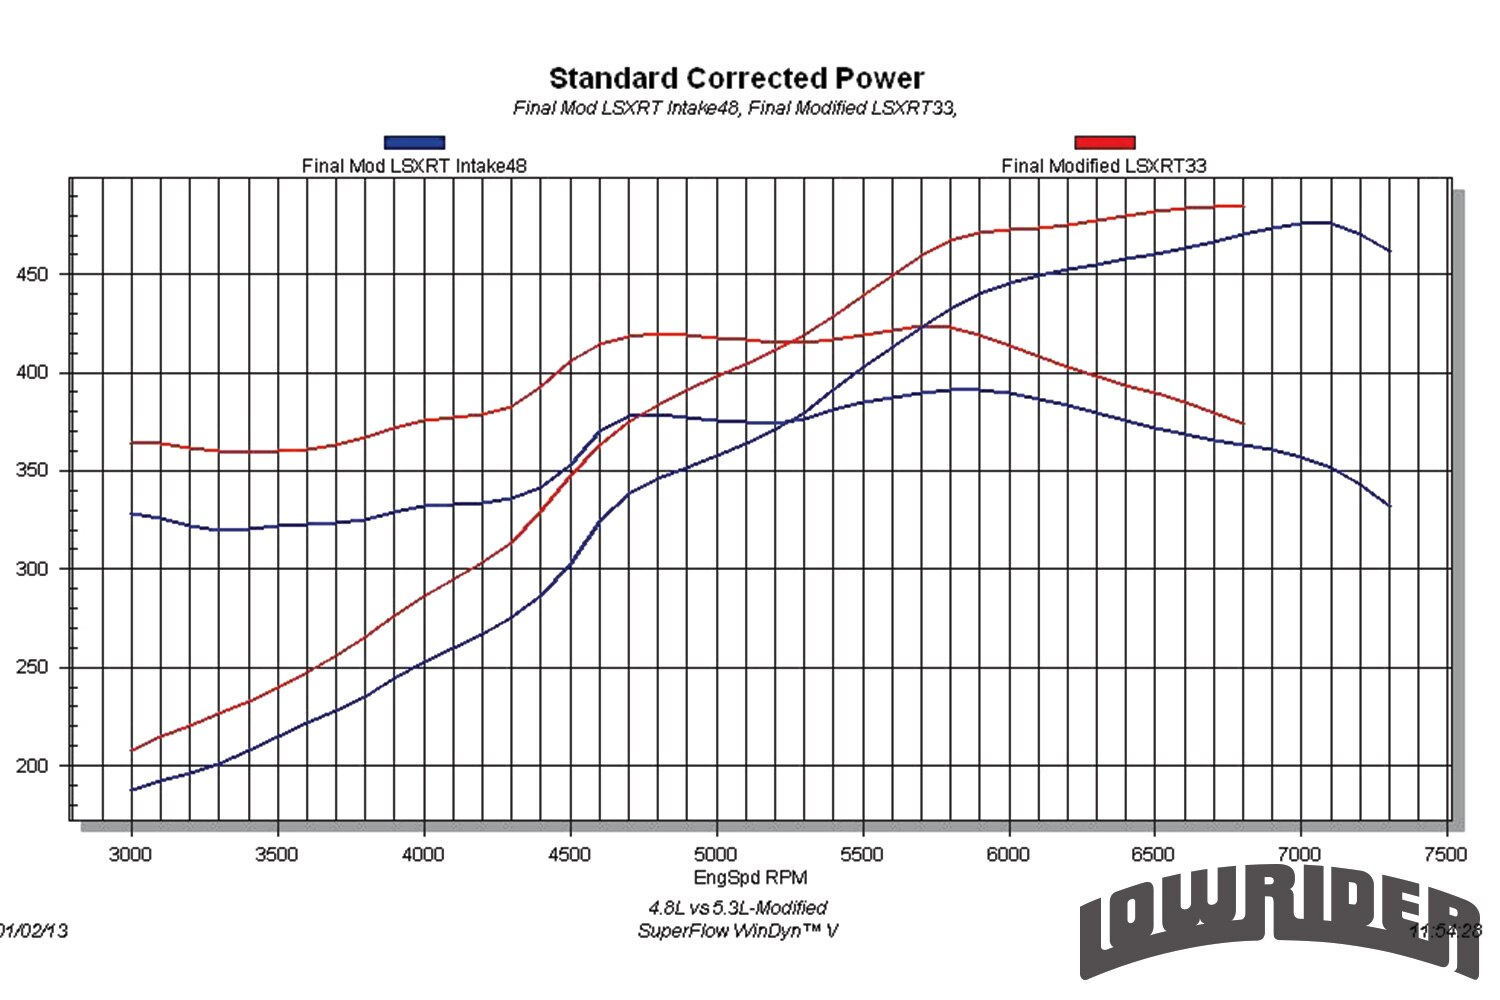 <strong>16</strong>. 4.8L vs 5.3L (Modified) The difference in the respective power curves continued after the modifications. The larger 5.3 offered more power through most of the curve, but the difference diminished with engine speed. In modified trim, the 5.3 produced 484 hp and 424 lb-ft of torque, while the smaller 4.8L managed 476 hp and 392 lb-ft of torque. The smaller 4.8 nearly equaled the larger 5.3 in peak power, but both peak power and peak torque occurred 200 rpm higher in the rev range. Given the shape of the curves, we suspect the 4.8L had even more power to offer had the heads been set up with even more valve spring pressure to allow for extended rpm up to 7,500 rpm.